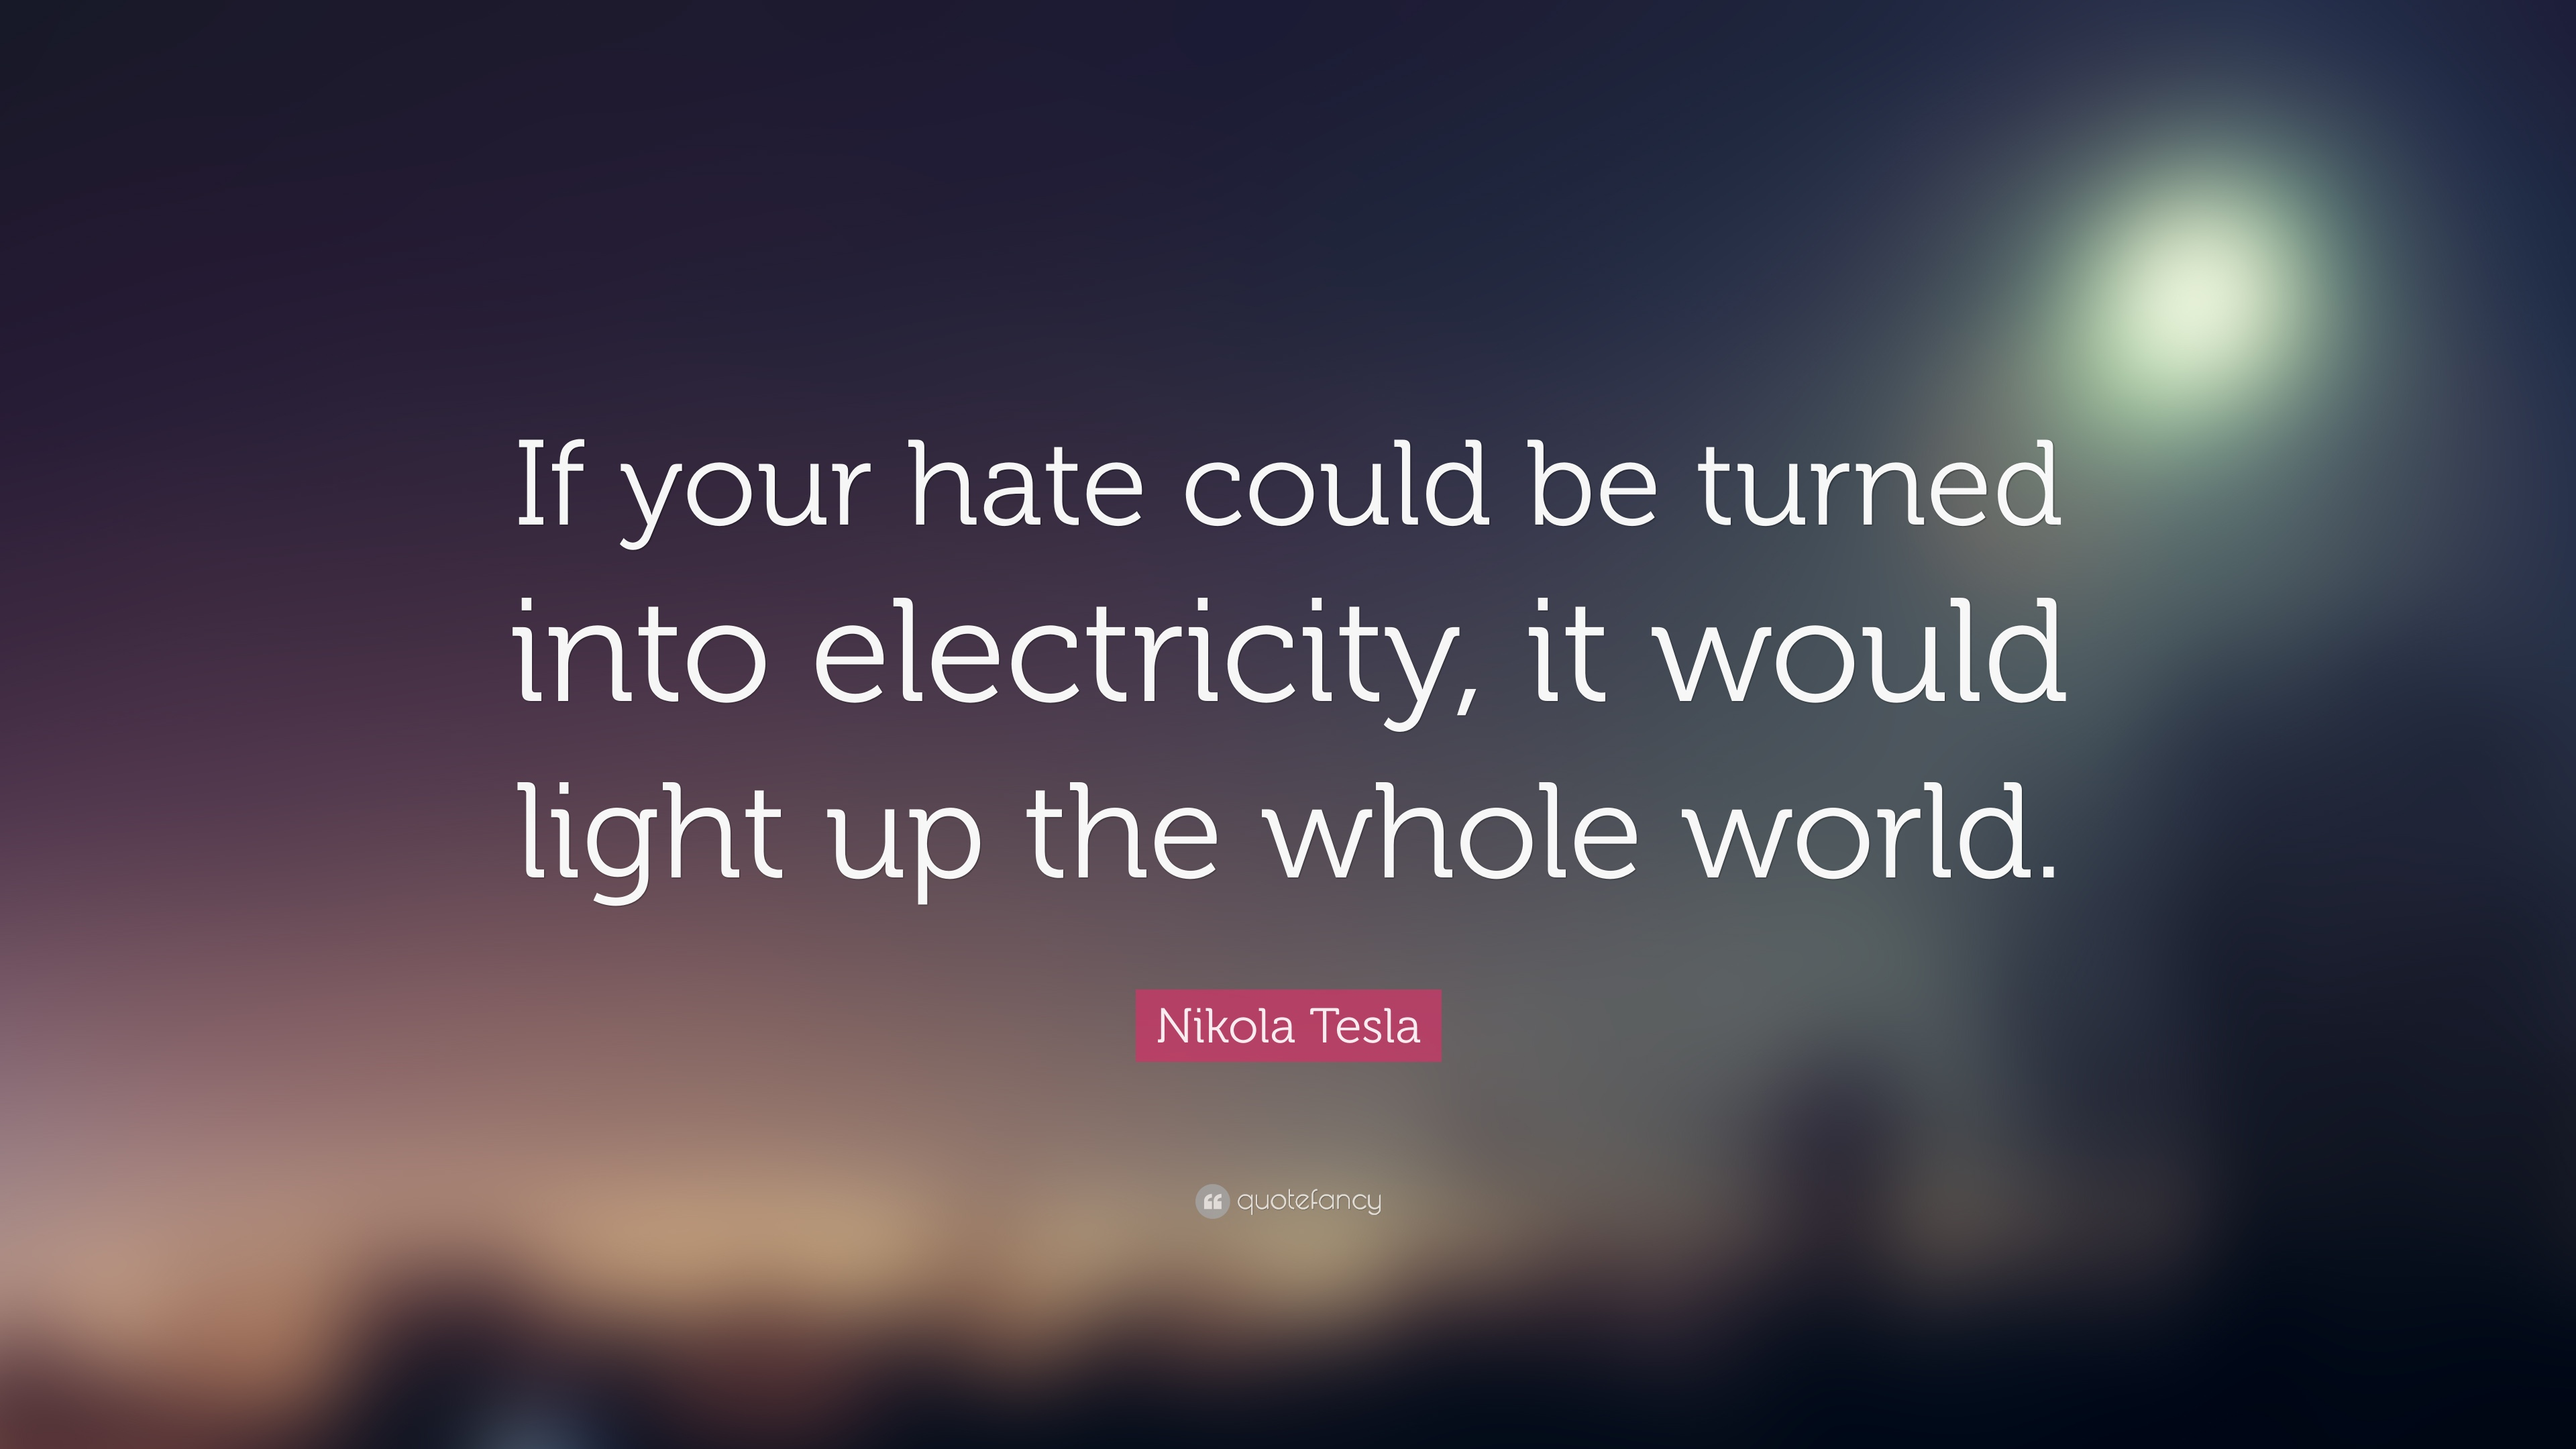 Nikola Tesla Wallpaper Quote Nikola Tesla Quote If Your Hate Could Be Turned Into